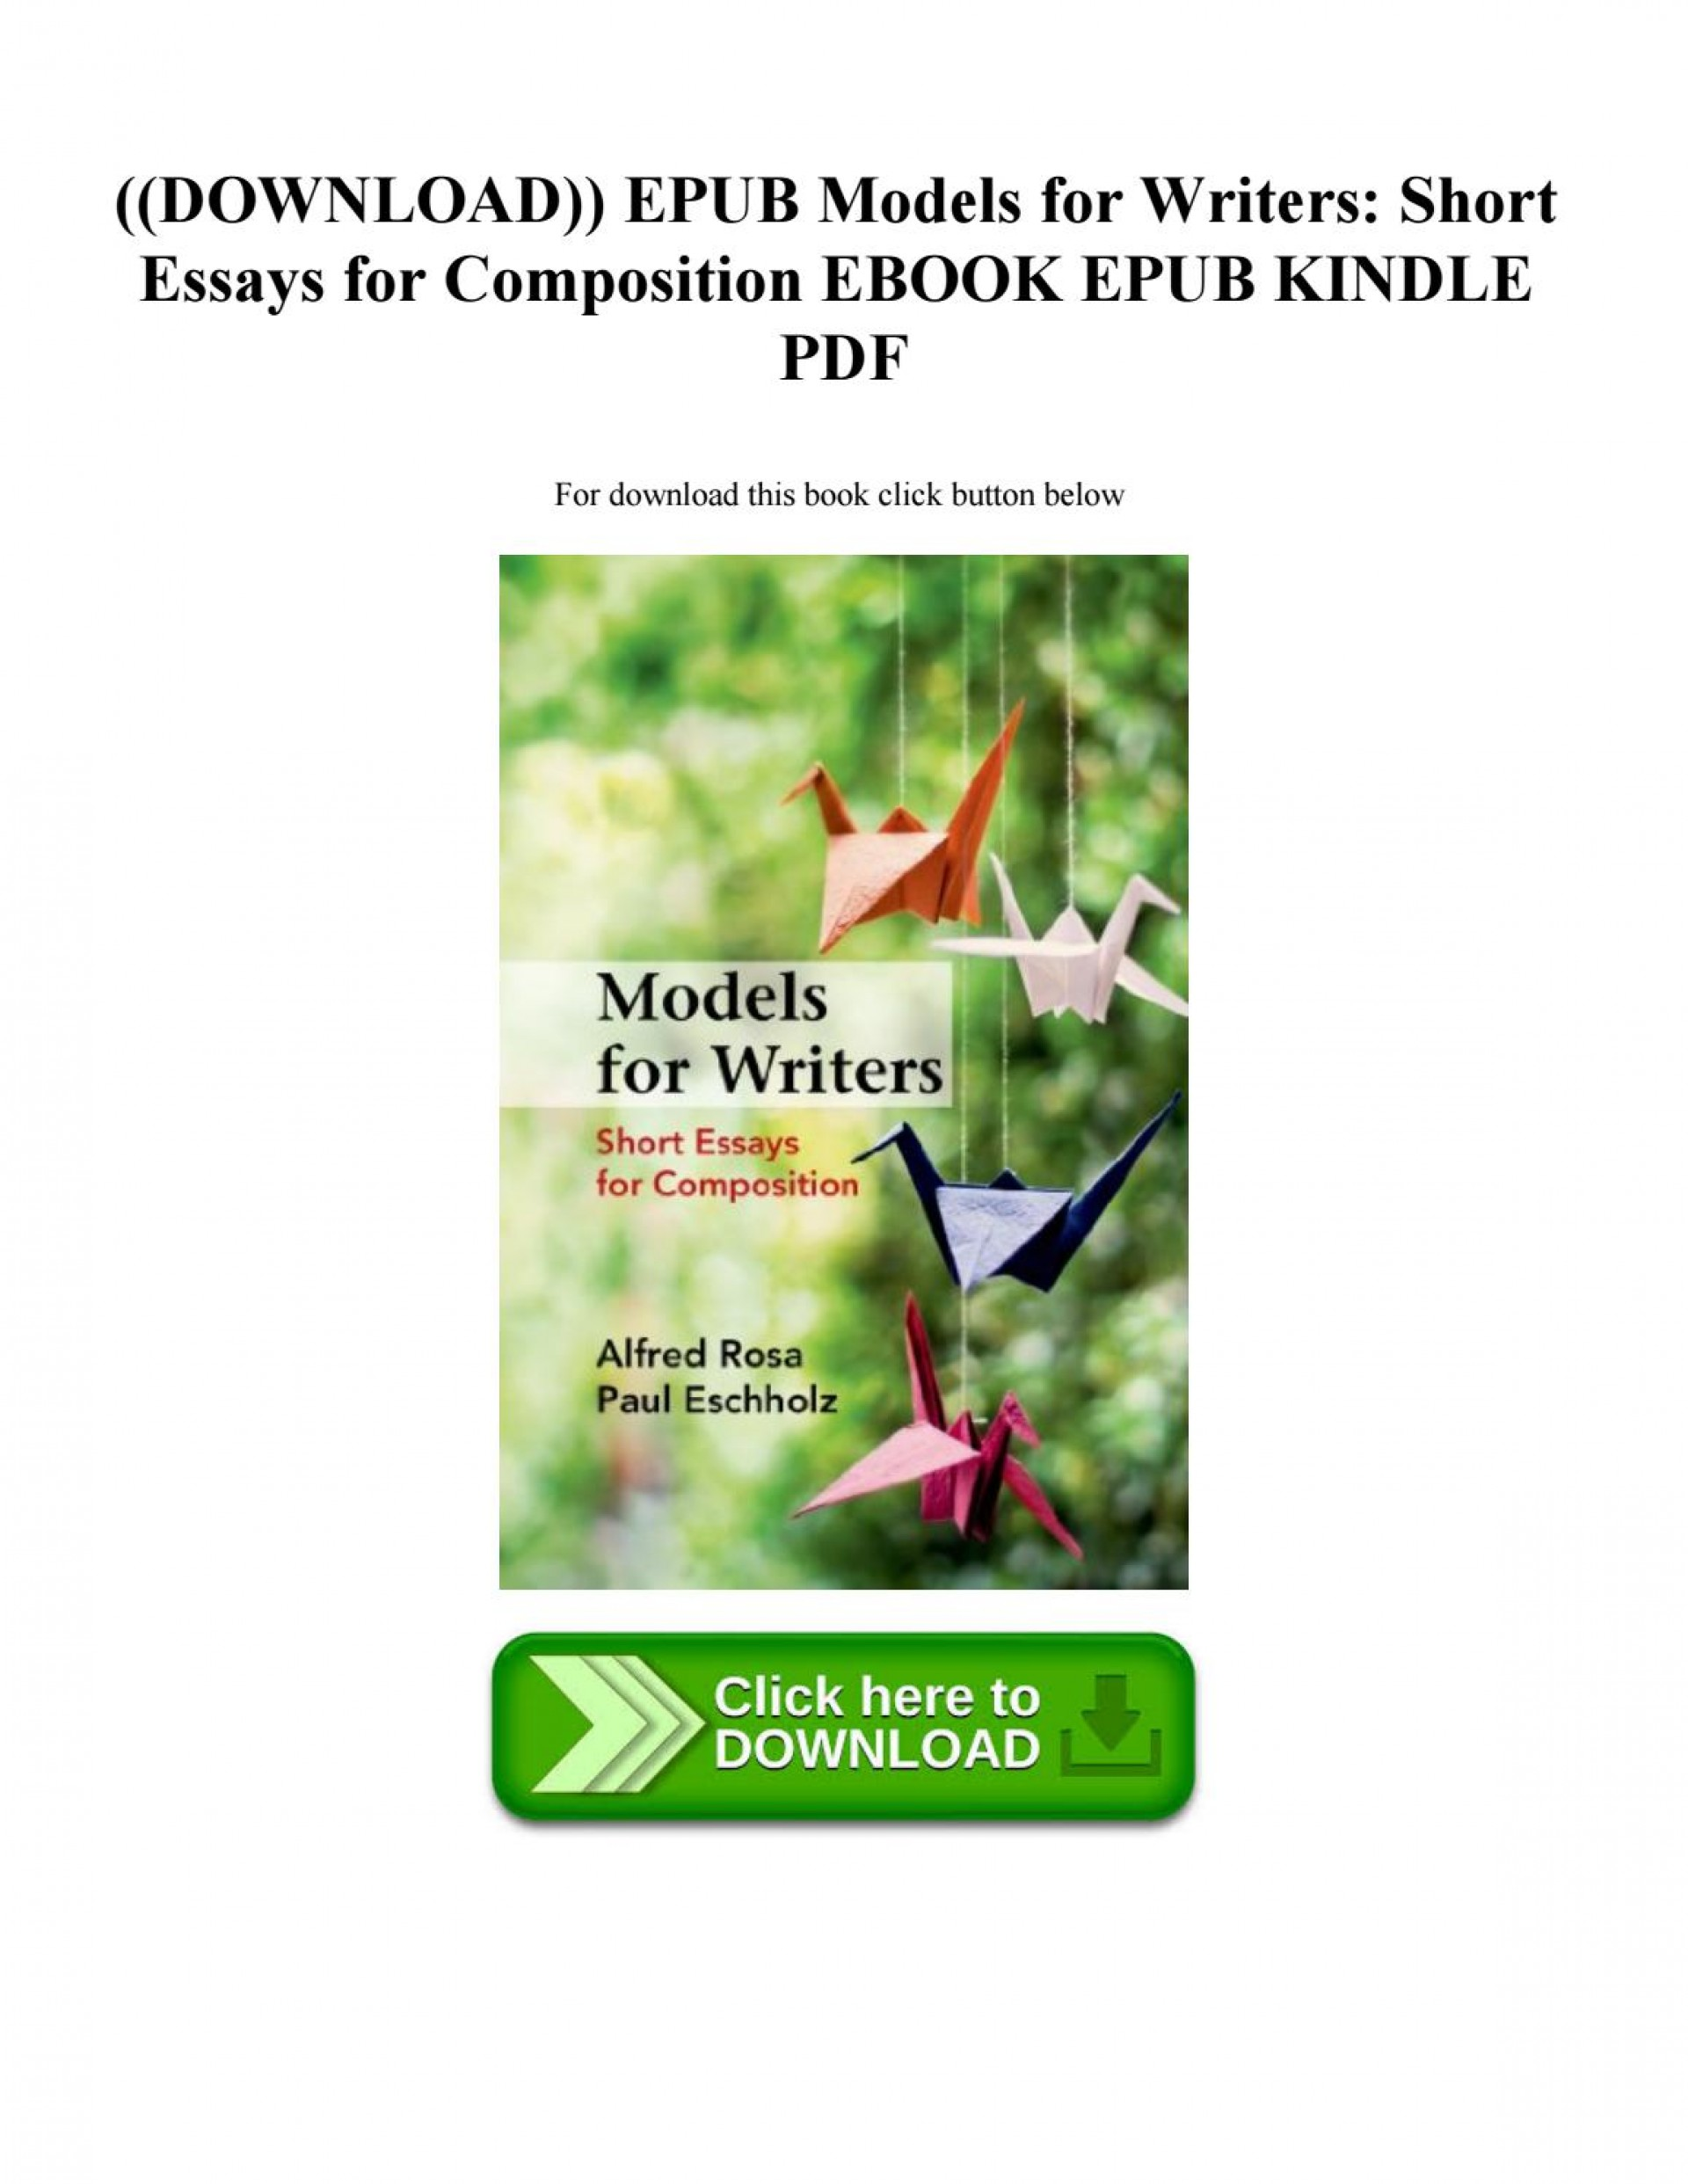 011 Essay Example Models For Writers Short Essays Composition Page 1 Singular 12th Edition 13th Pdf 1920